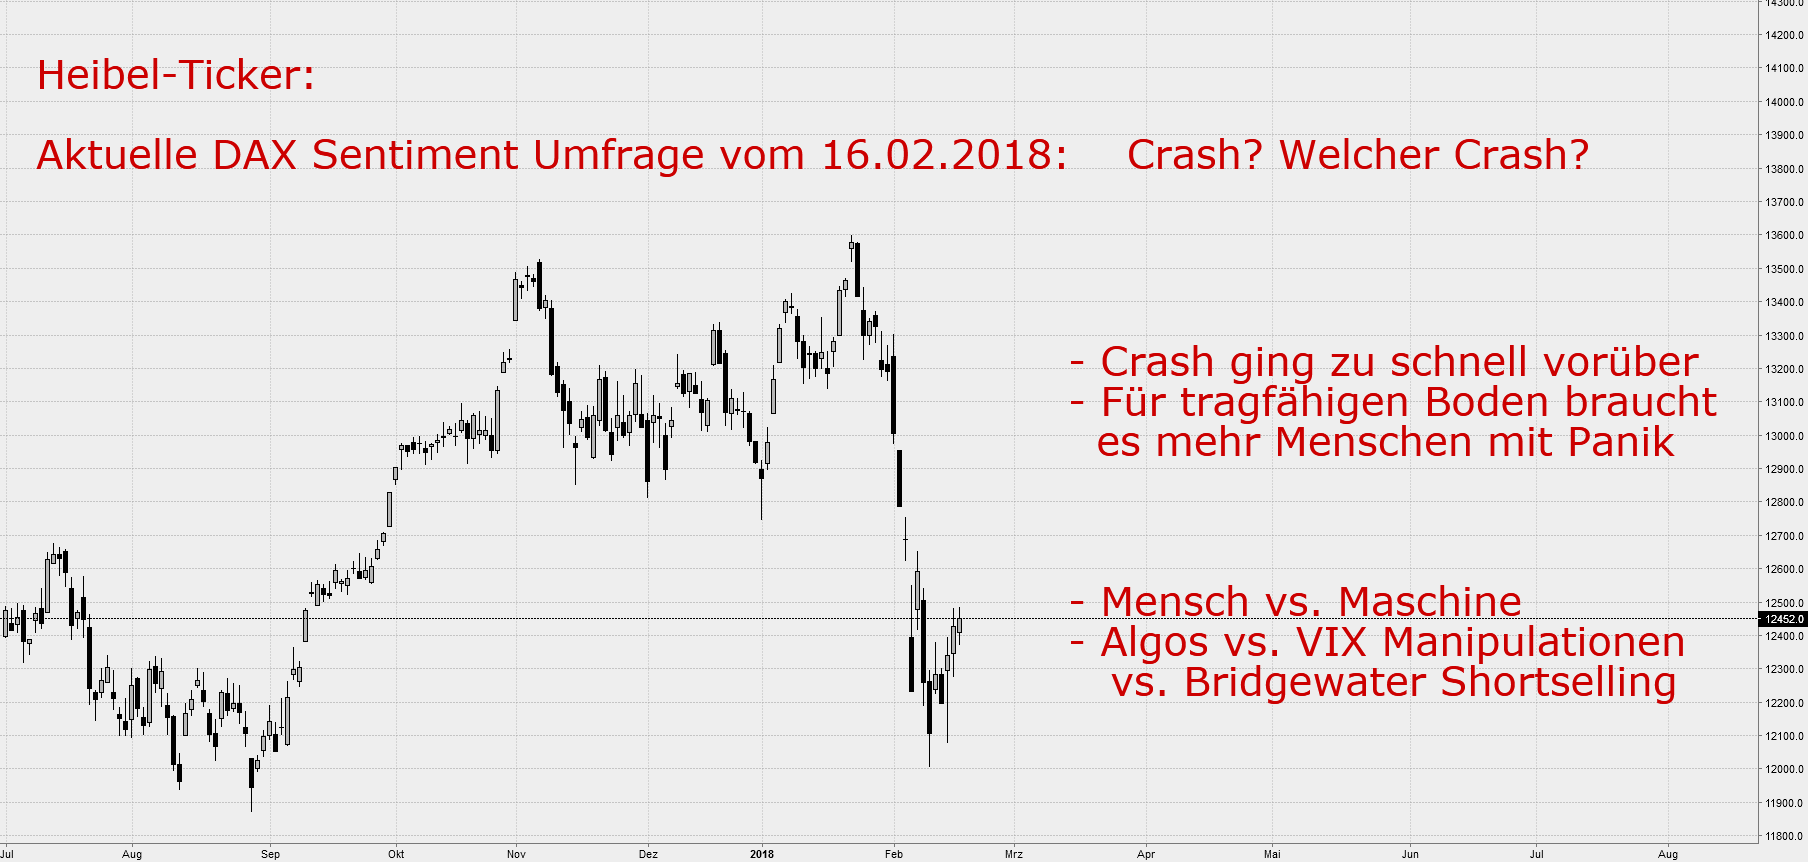 Aktuelle DAX Sentiment Umfrage: Crash? Welcher Crash?